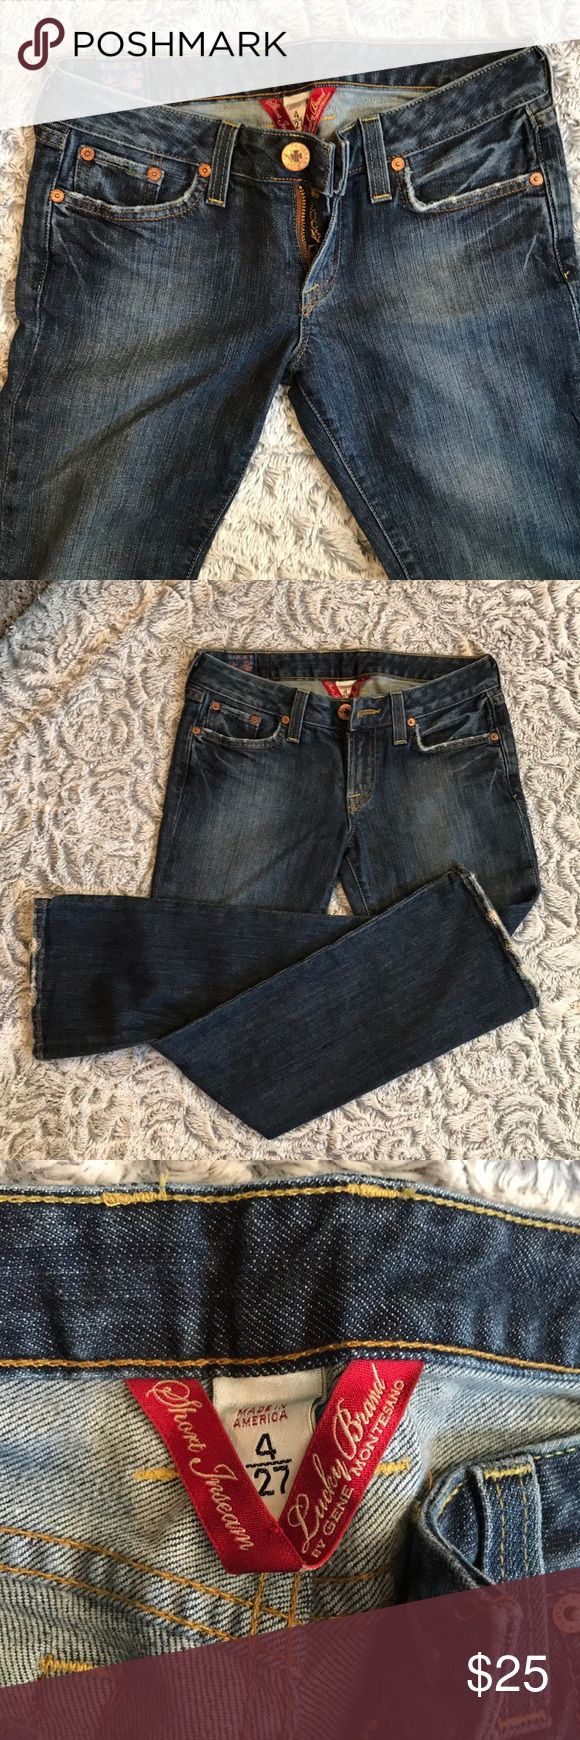 LUCKY JEANS 🍀🍀🍀 LUCKY JEANS 🍀🍀🍀 size 4, great condition! Lola boot jean! Awesome fit Lucky Brand Jeans Boot Cut